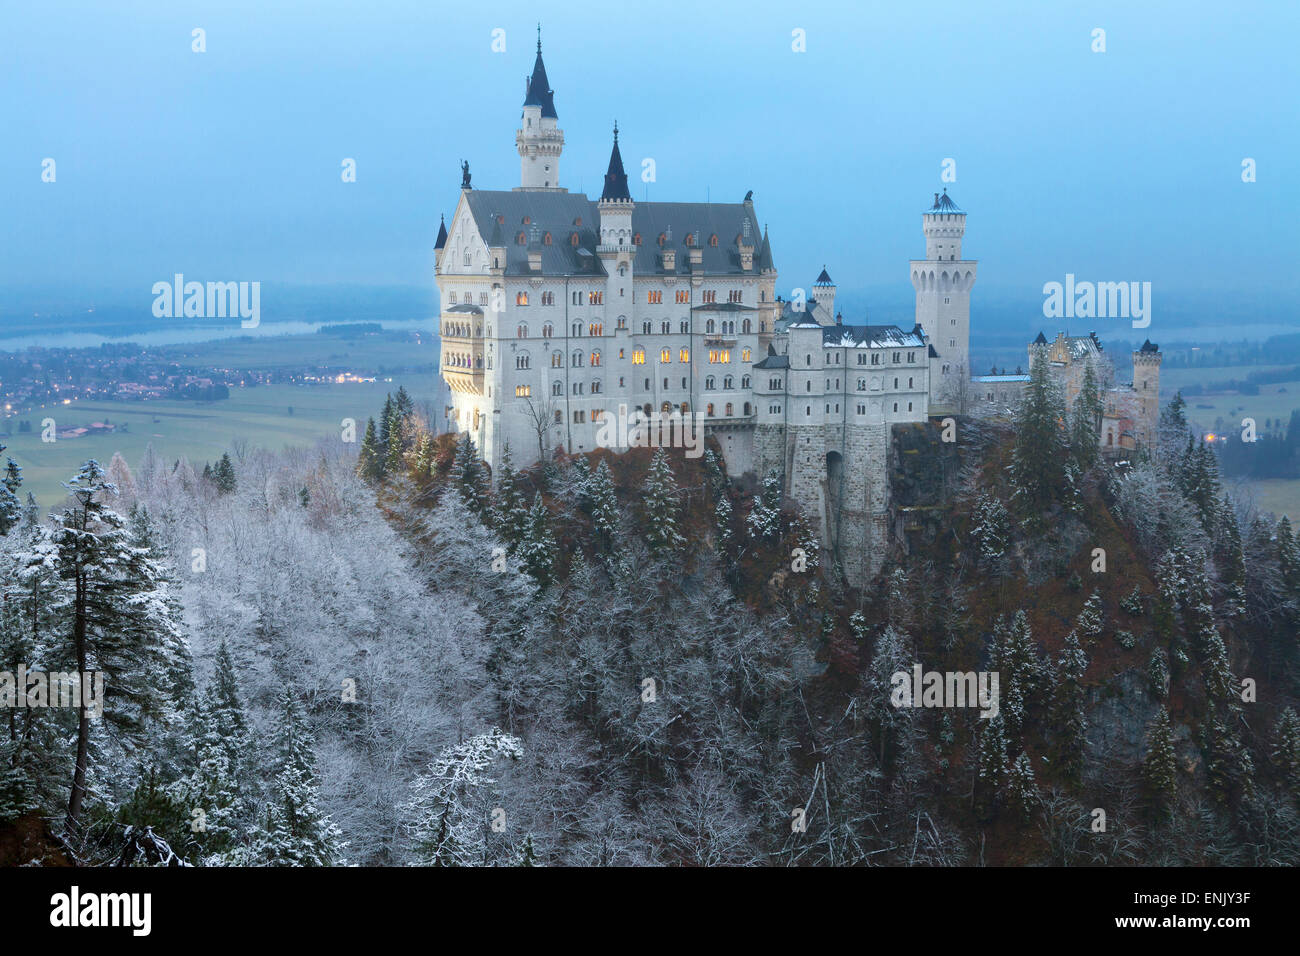 Neuschwanstein Castle in winter, Fussen, Bavaria, Germany, Europe - Stock Image